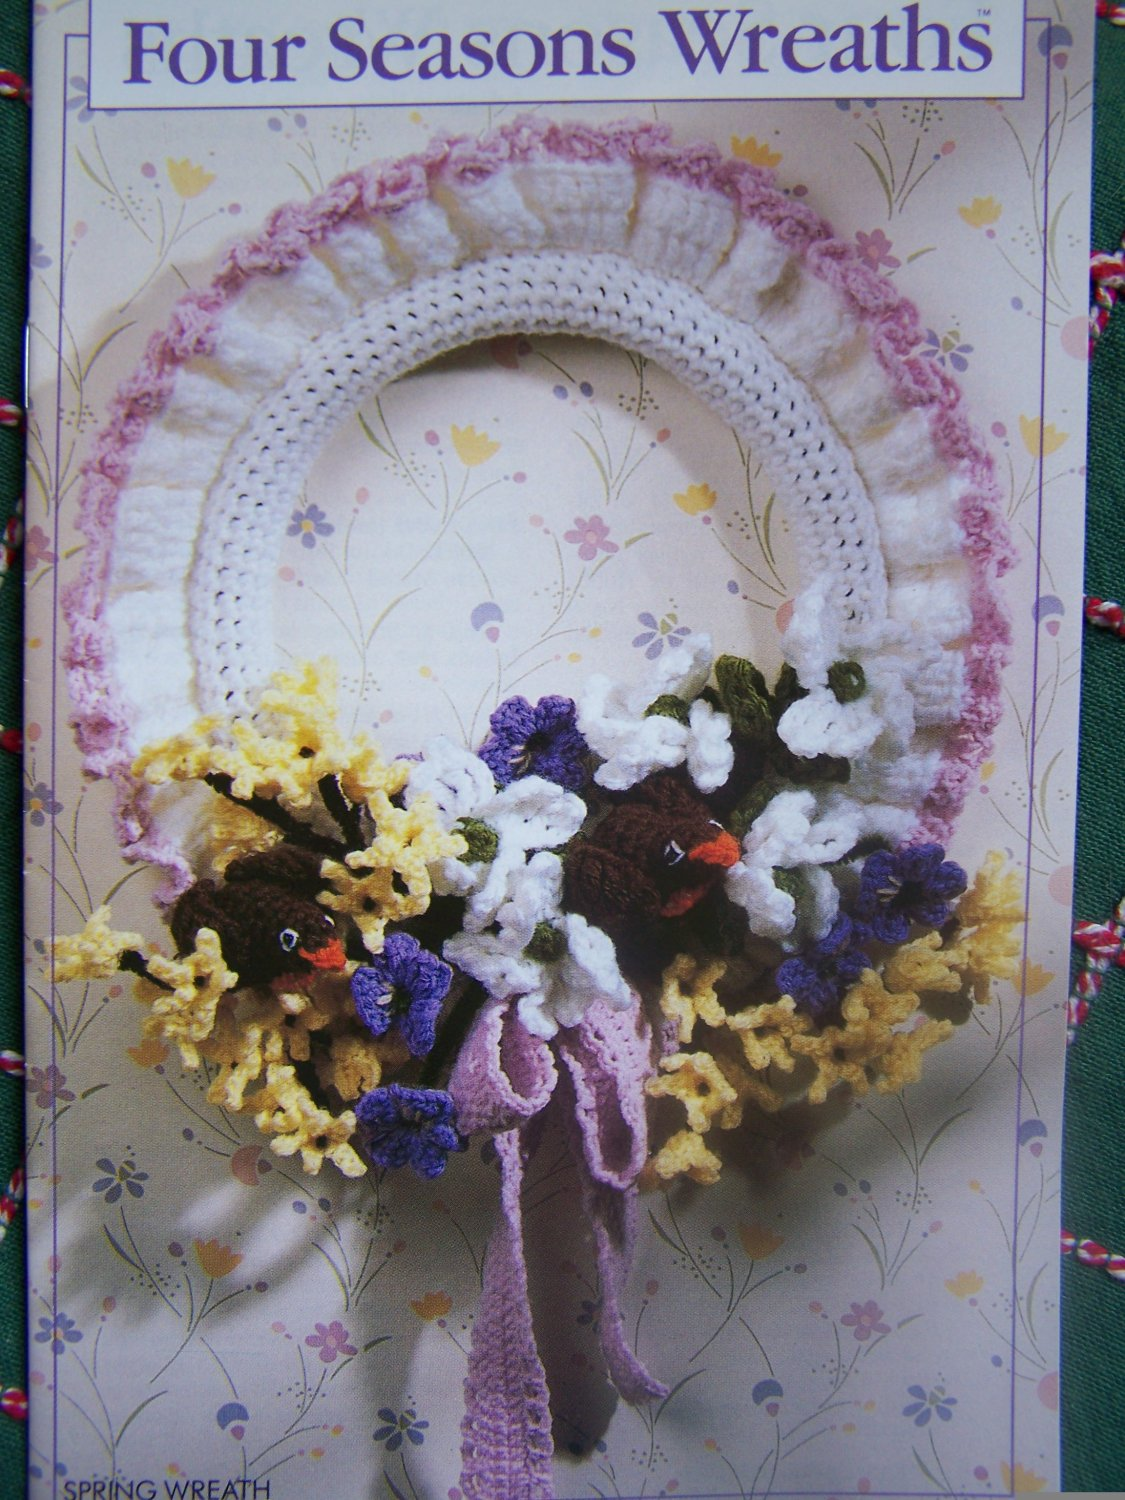 USA Free S&H Vintage Annie's Attic Crochet Patterns Four Seasons Wreaths 87F35